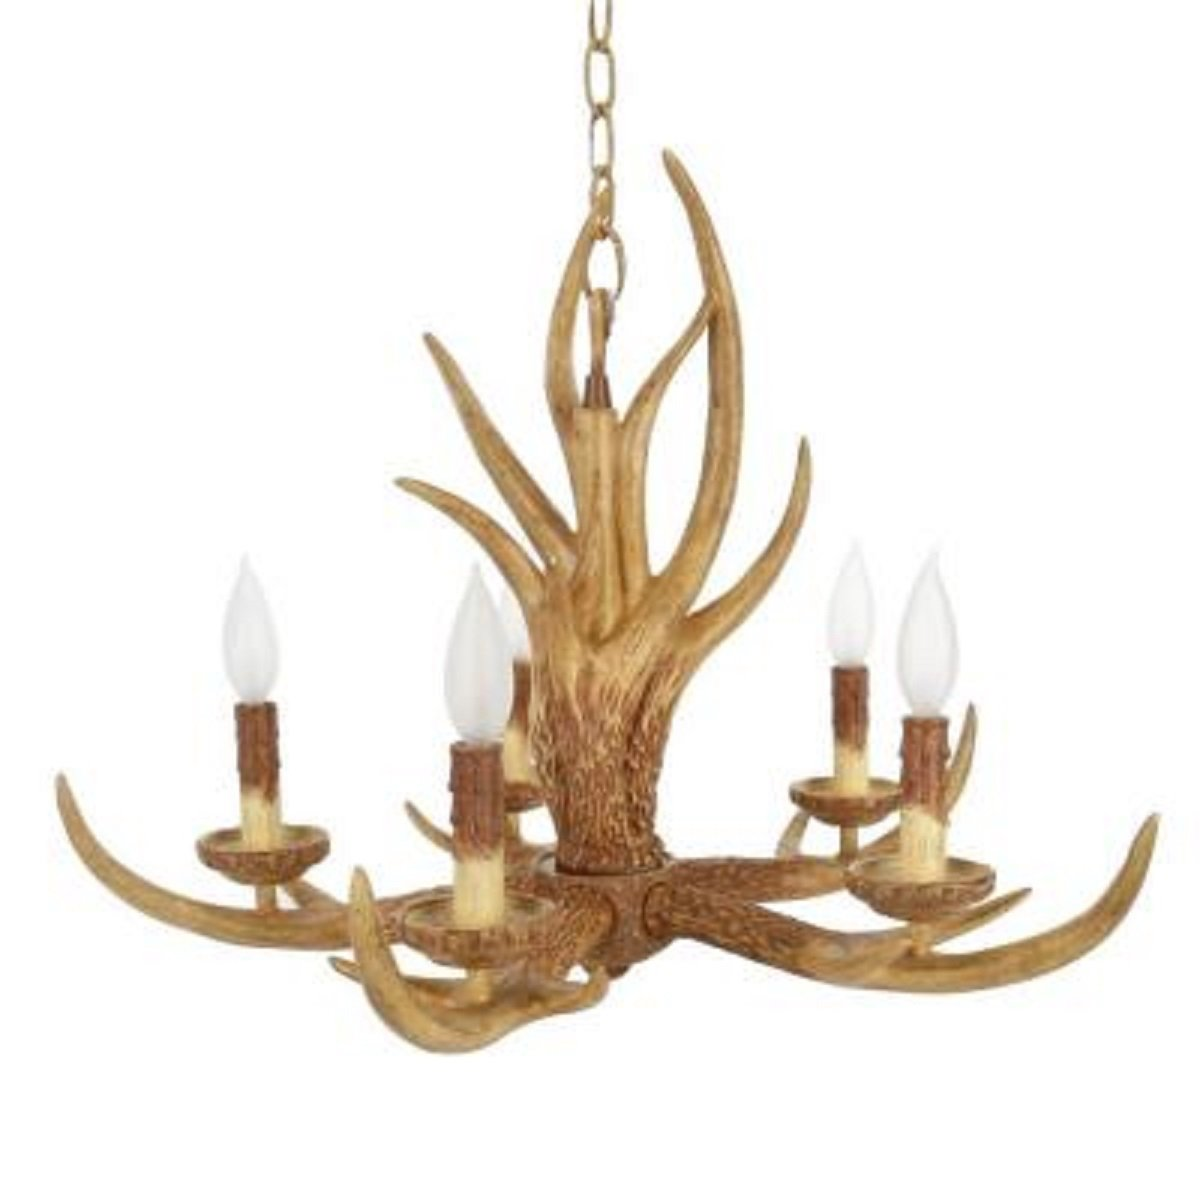 Antler collection 5 light hang 19375h x 26w x natural antler antler collection 5 light hang 19375h x 26w x natural antler chandeliers amazon aloadofball Choice Image